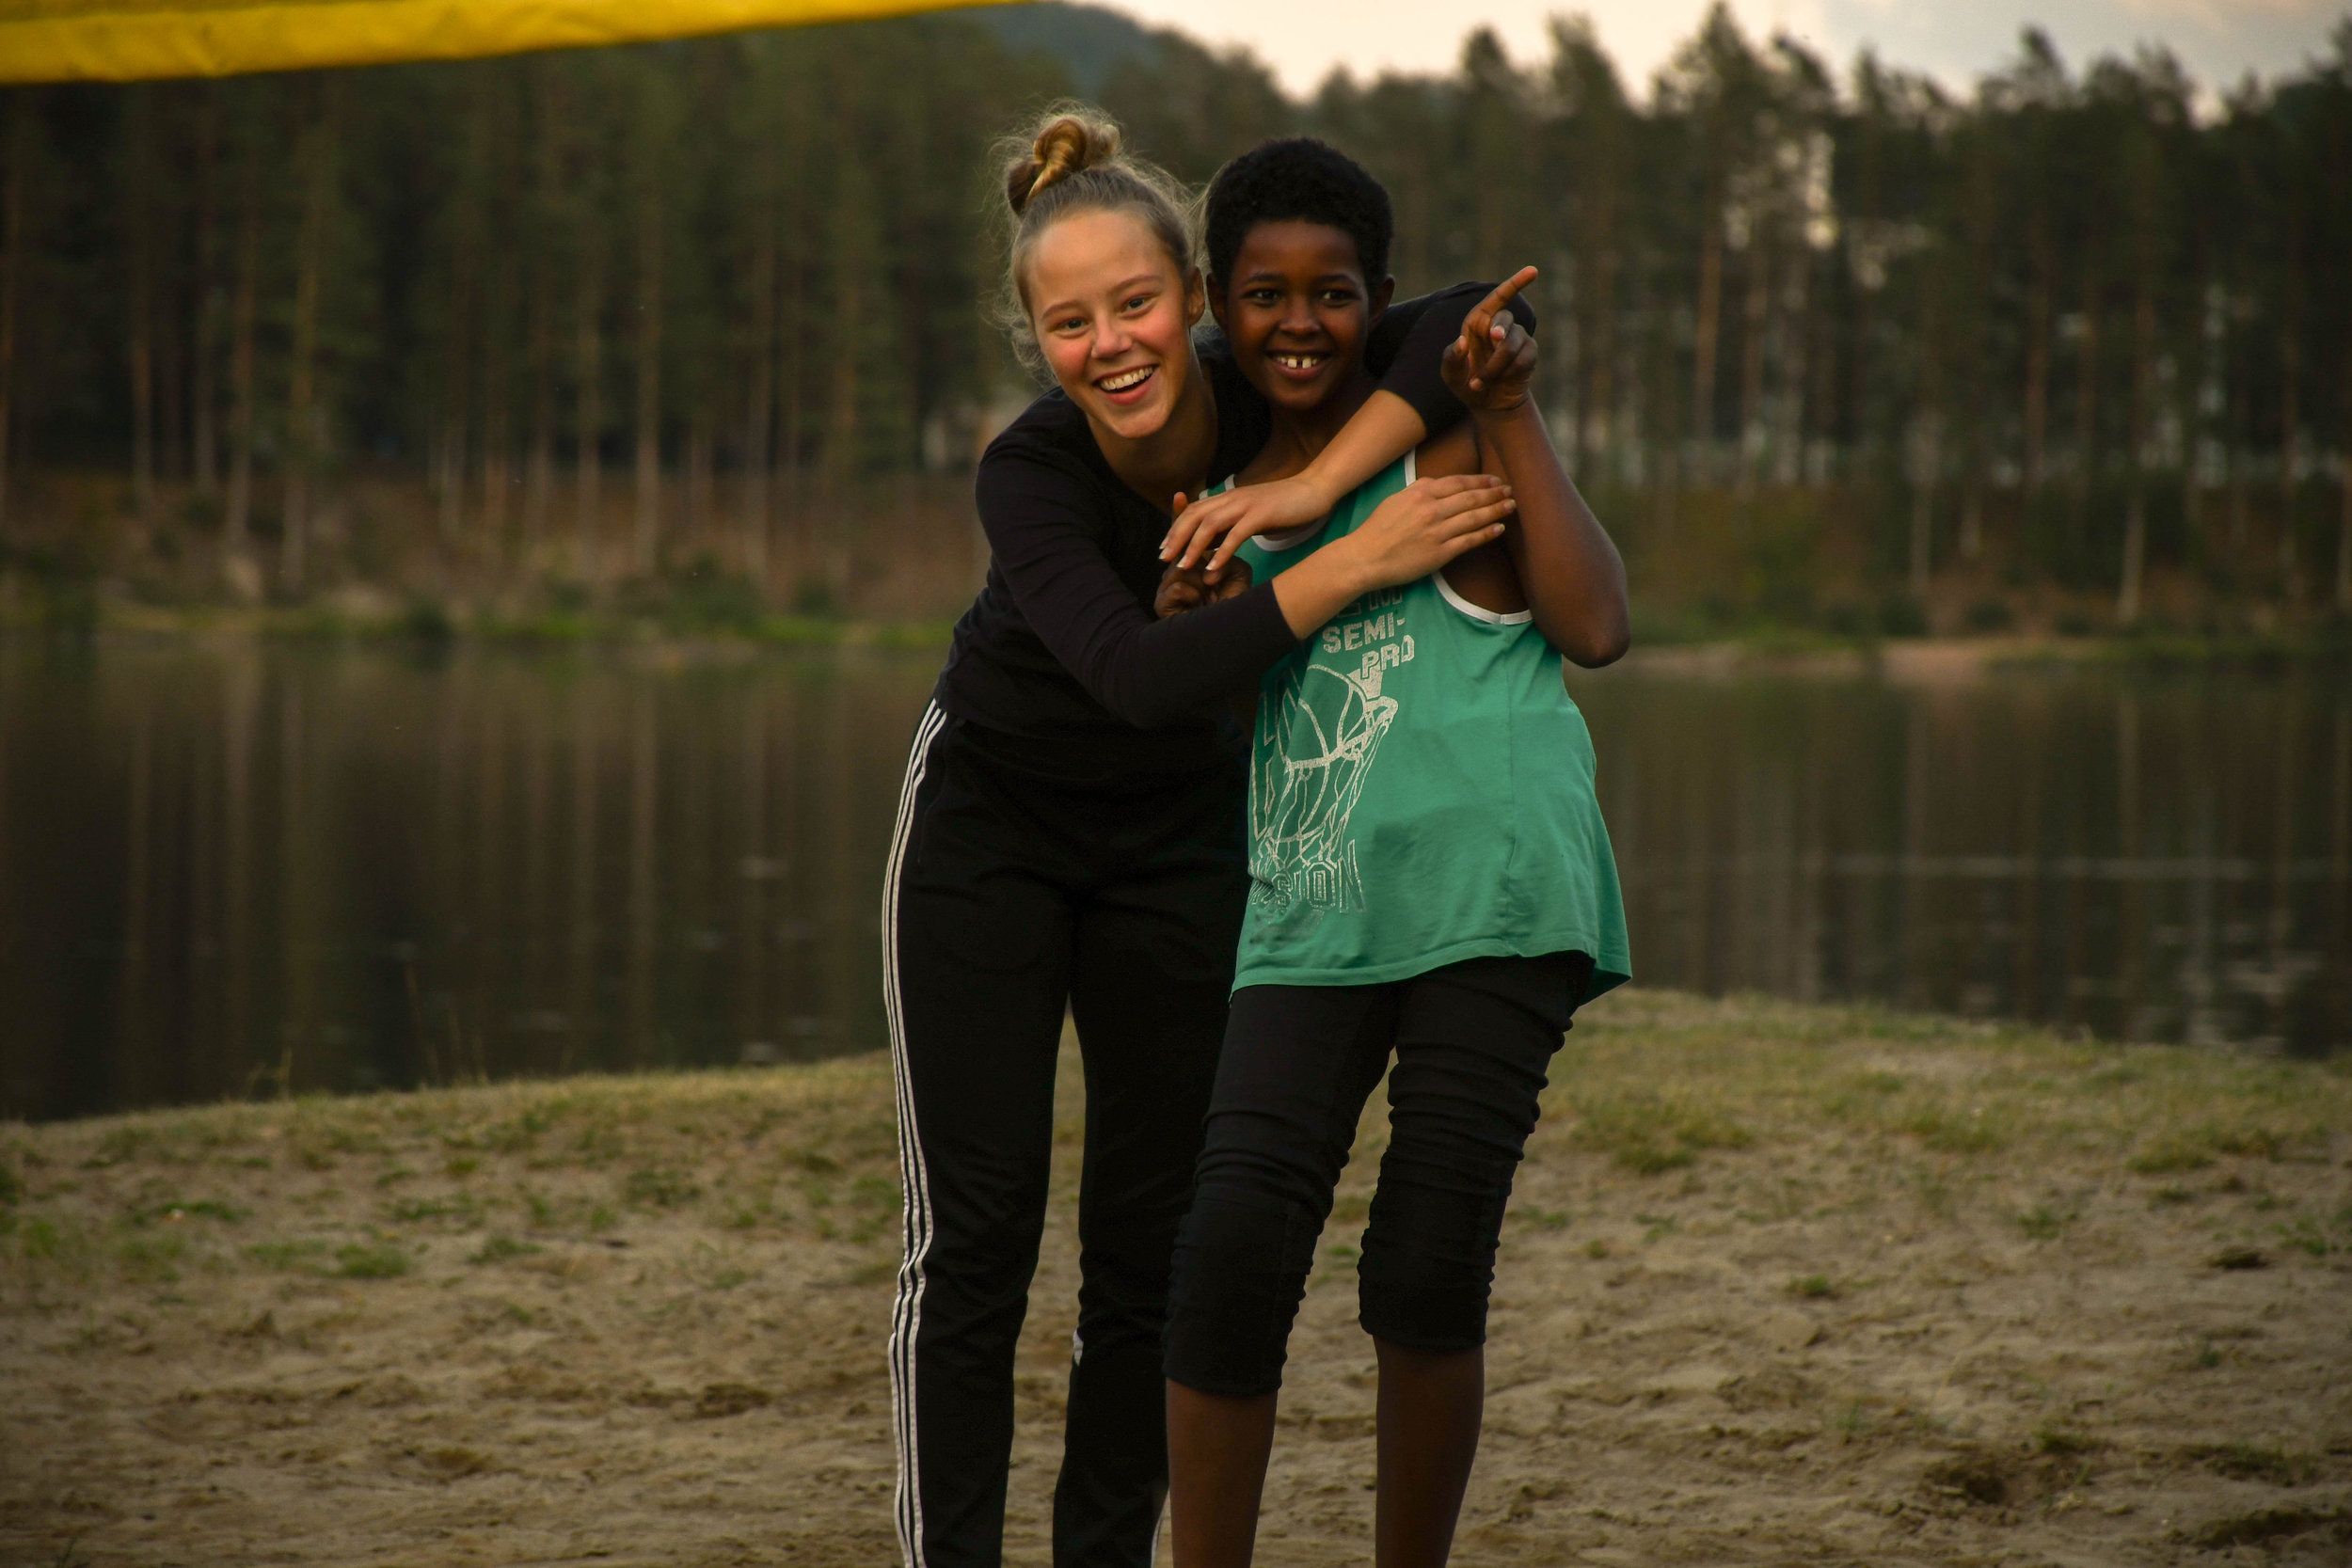 Two of our campers playing volleyball and having fun together at the lake after camp